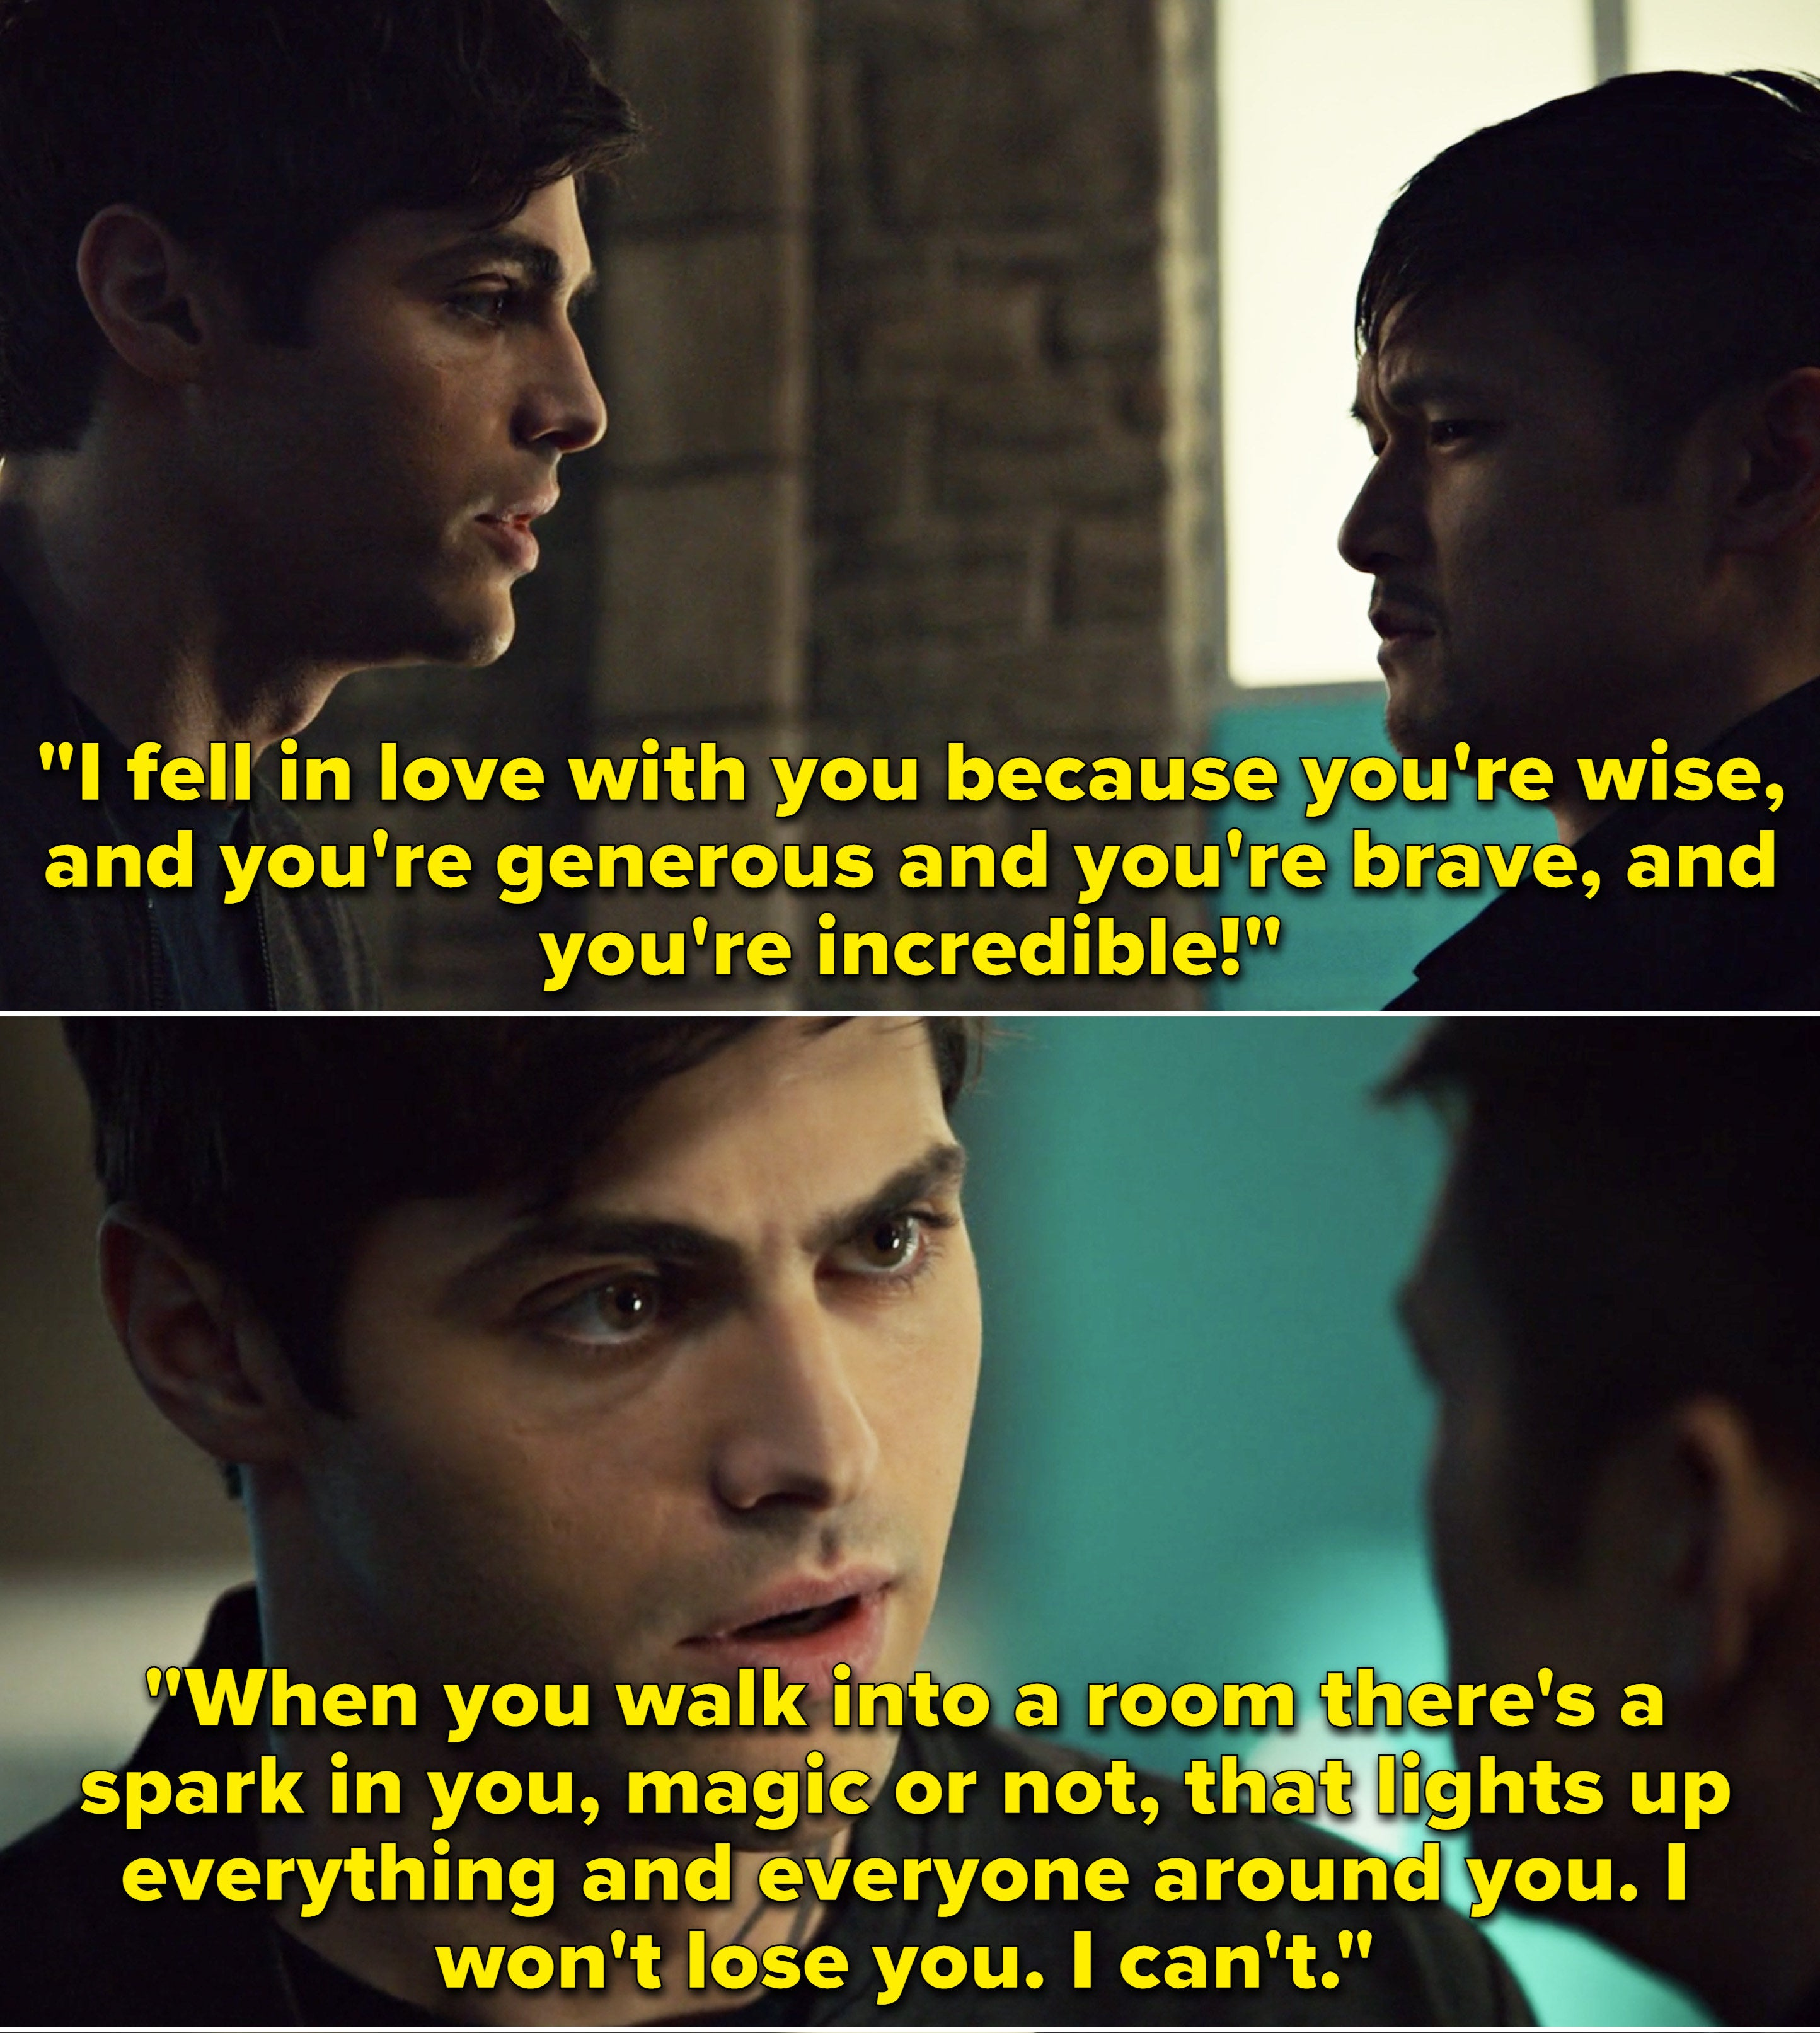 Alec telling Magnus he fell in love with him because he's wise, generous, brave, and incredible, even without his magic